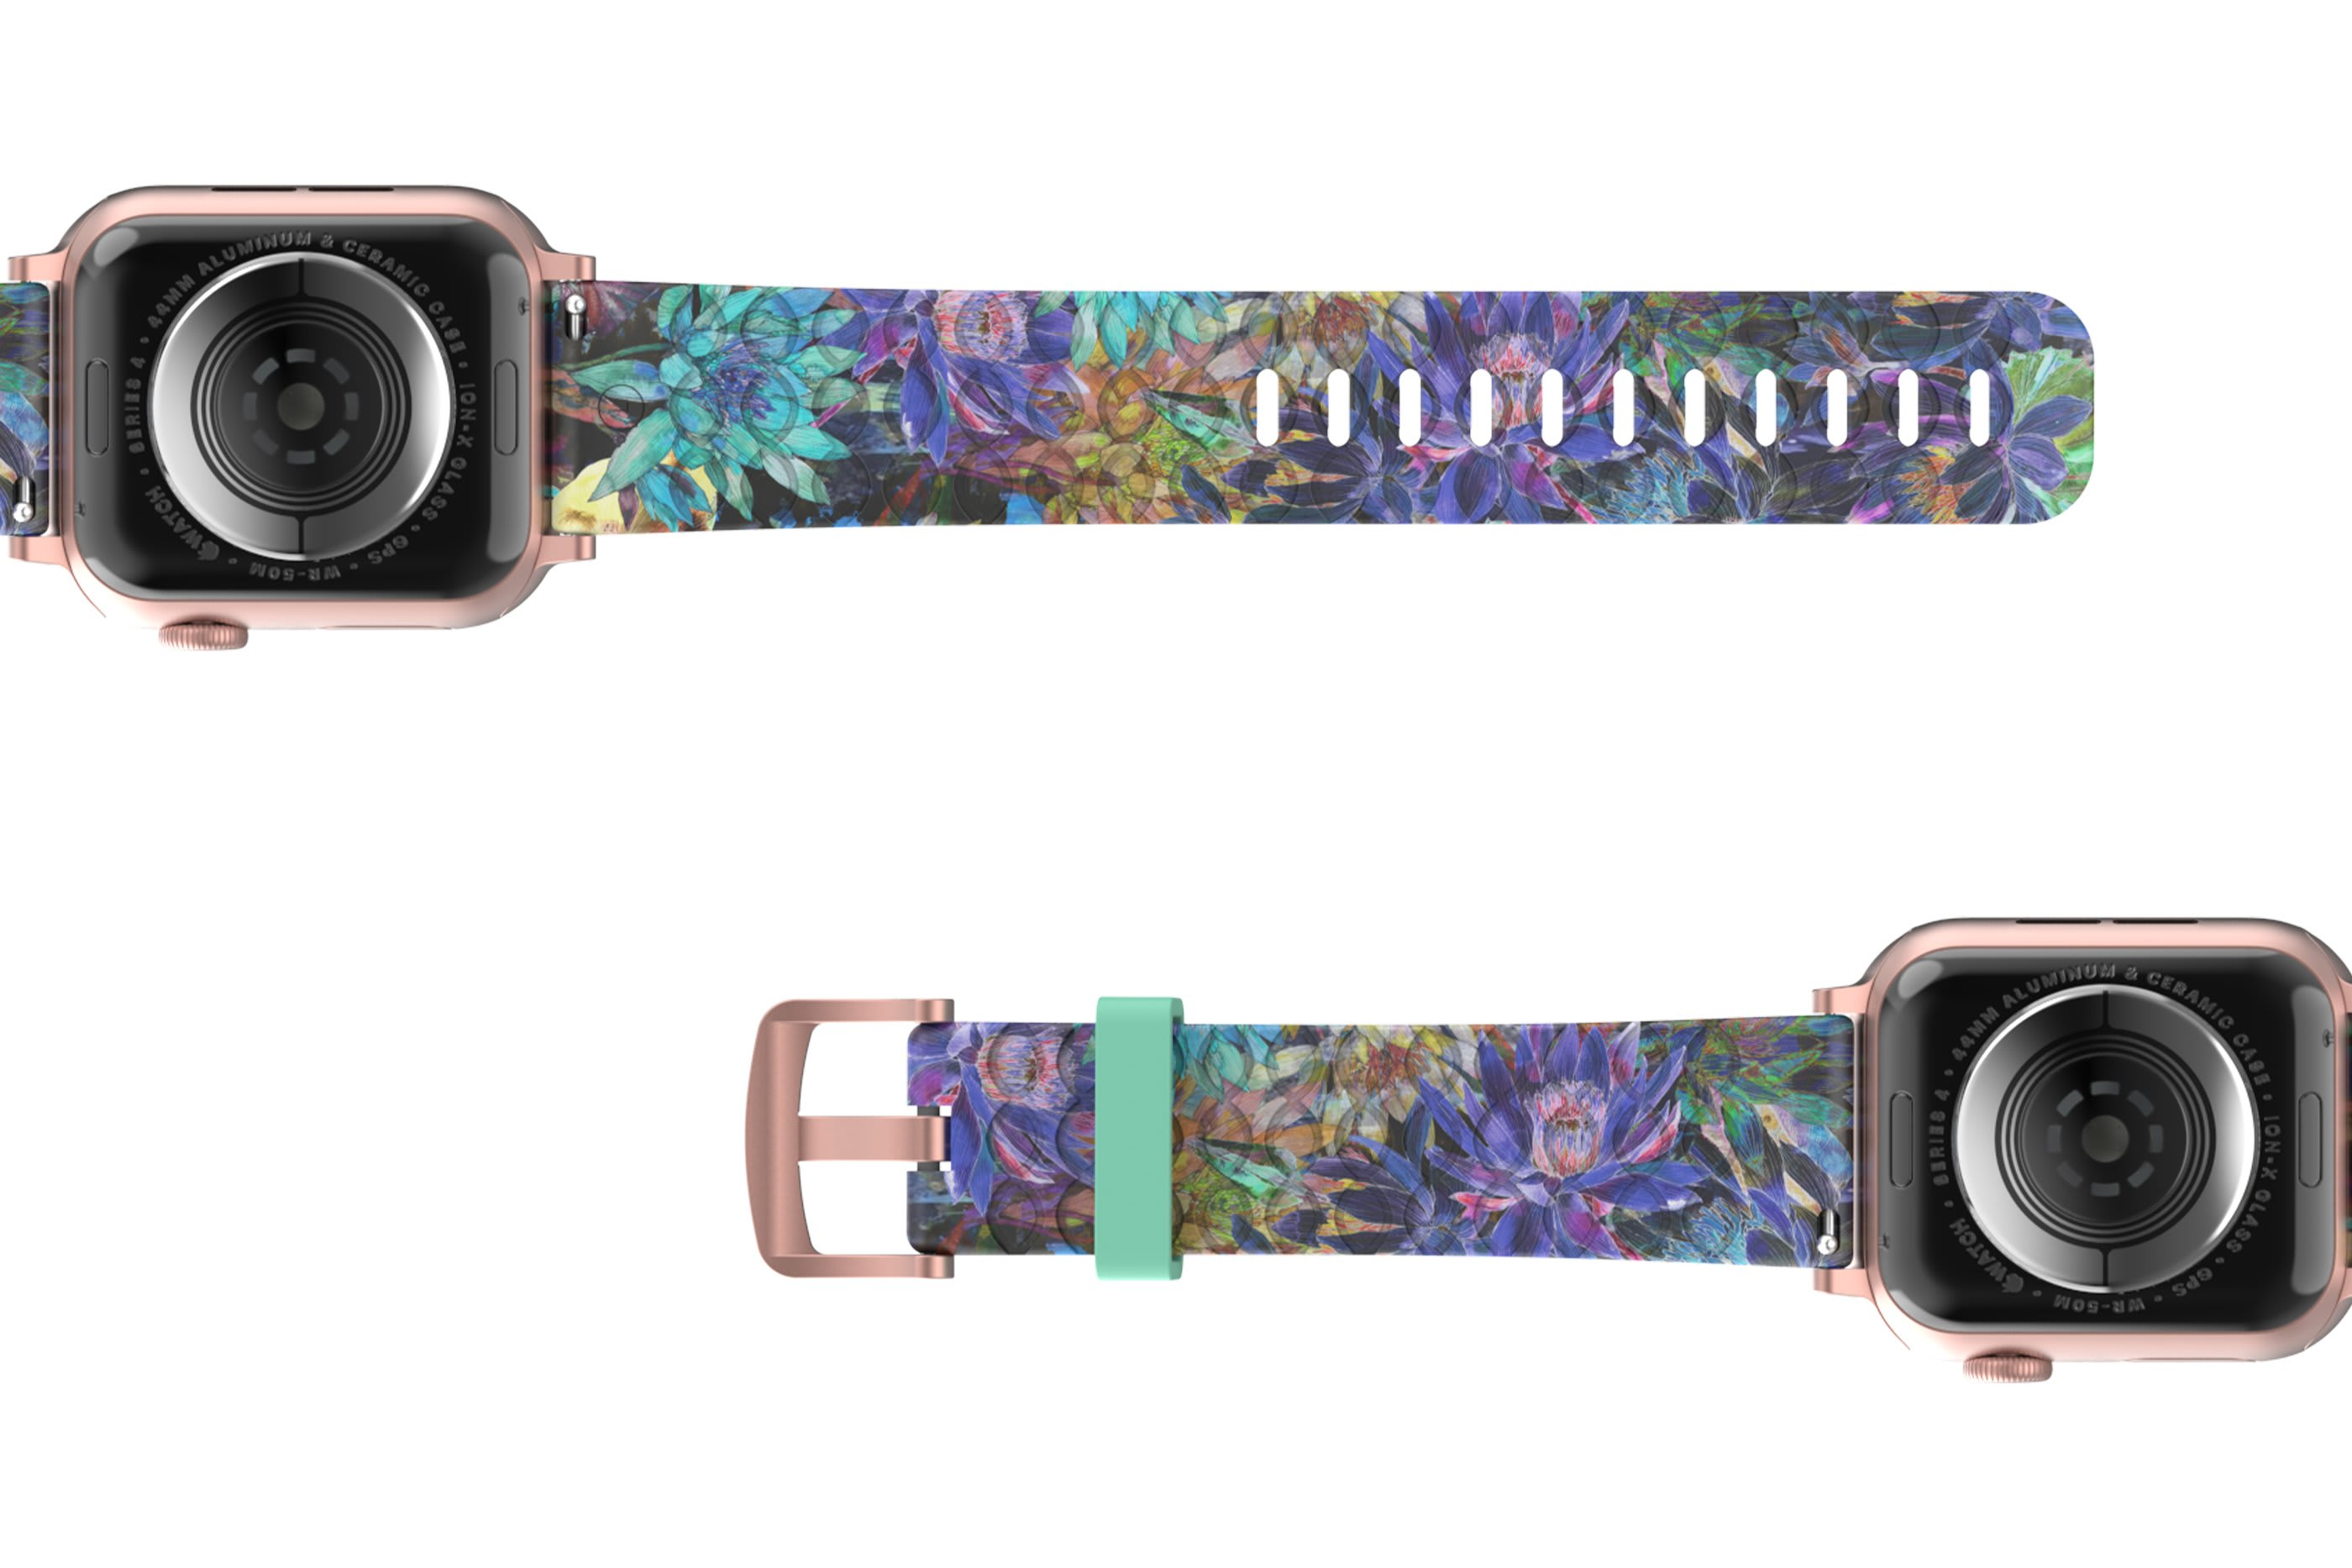 Twilight Blossom Apple Watch Band with rose gold hardware viewed bottom up